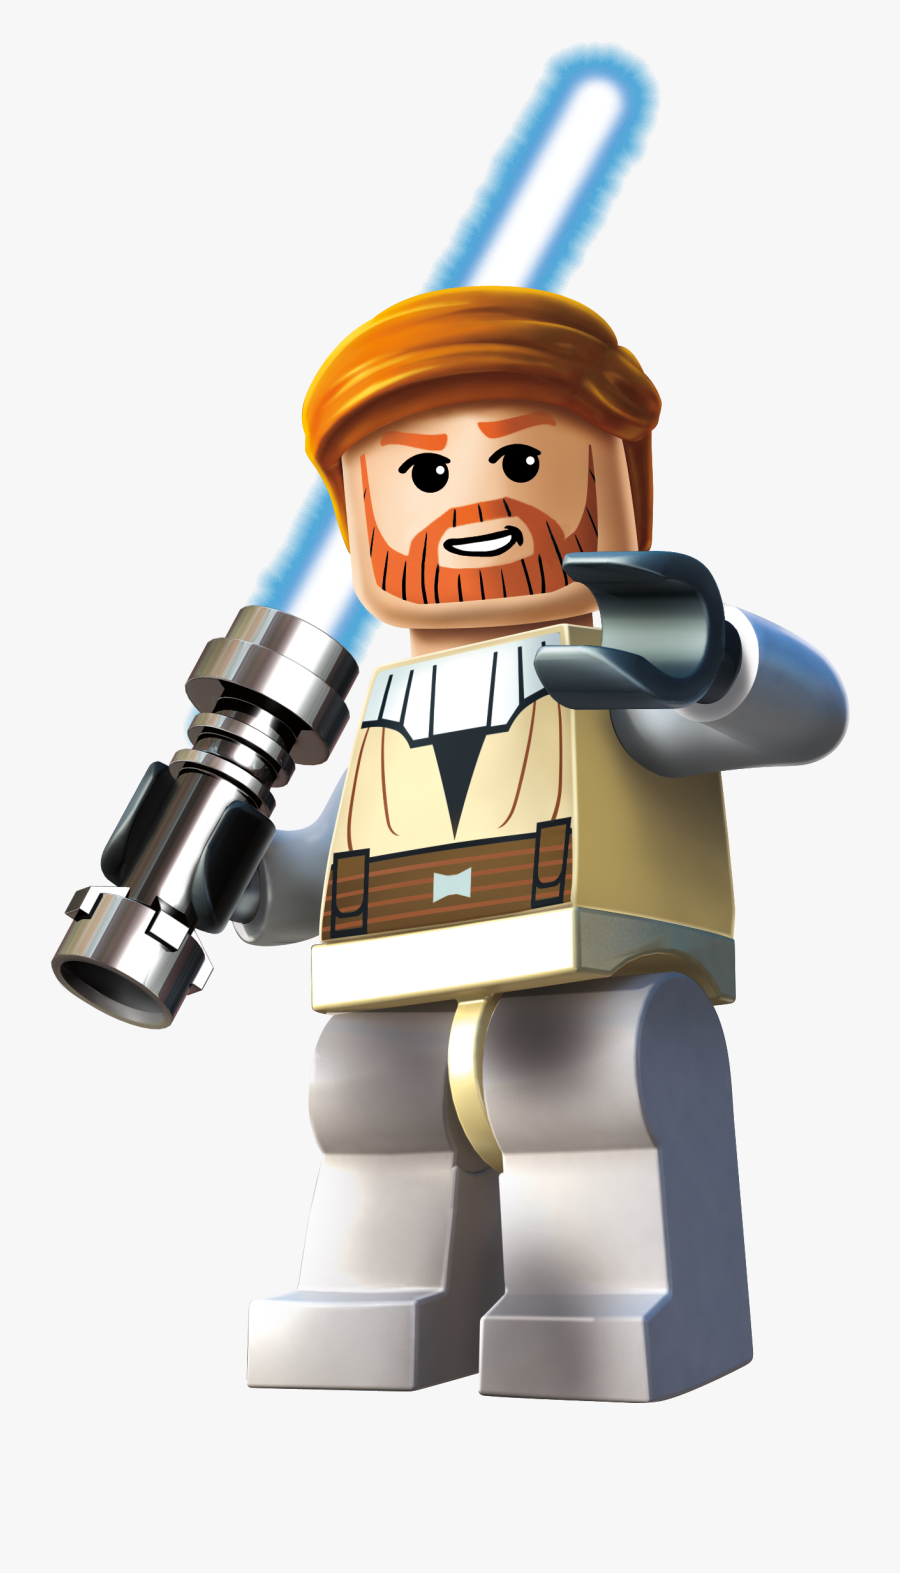 Lego Clipart Starwars - Star Wars Lego Characters Png, Transparent Clipart